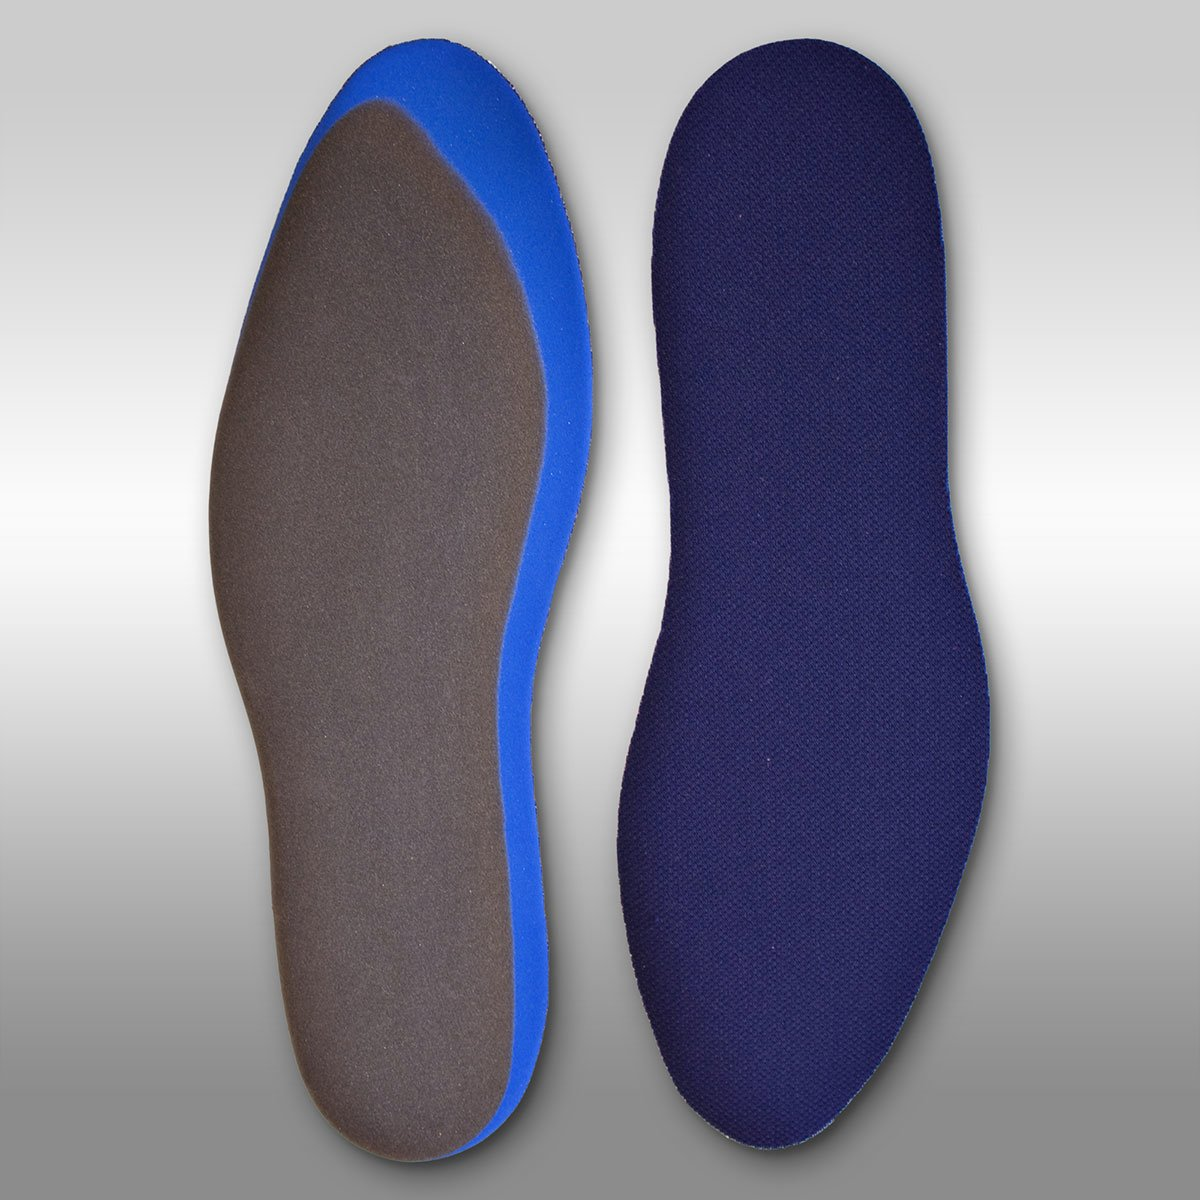 Lateral Sole Wedge Insoles